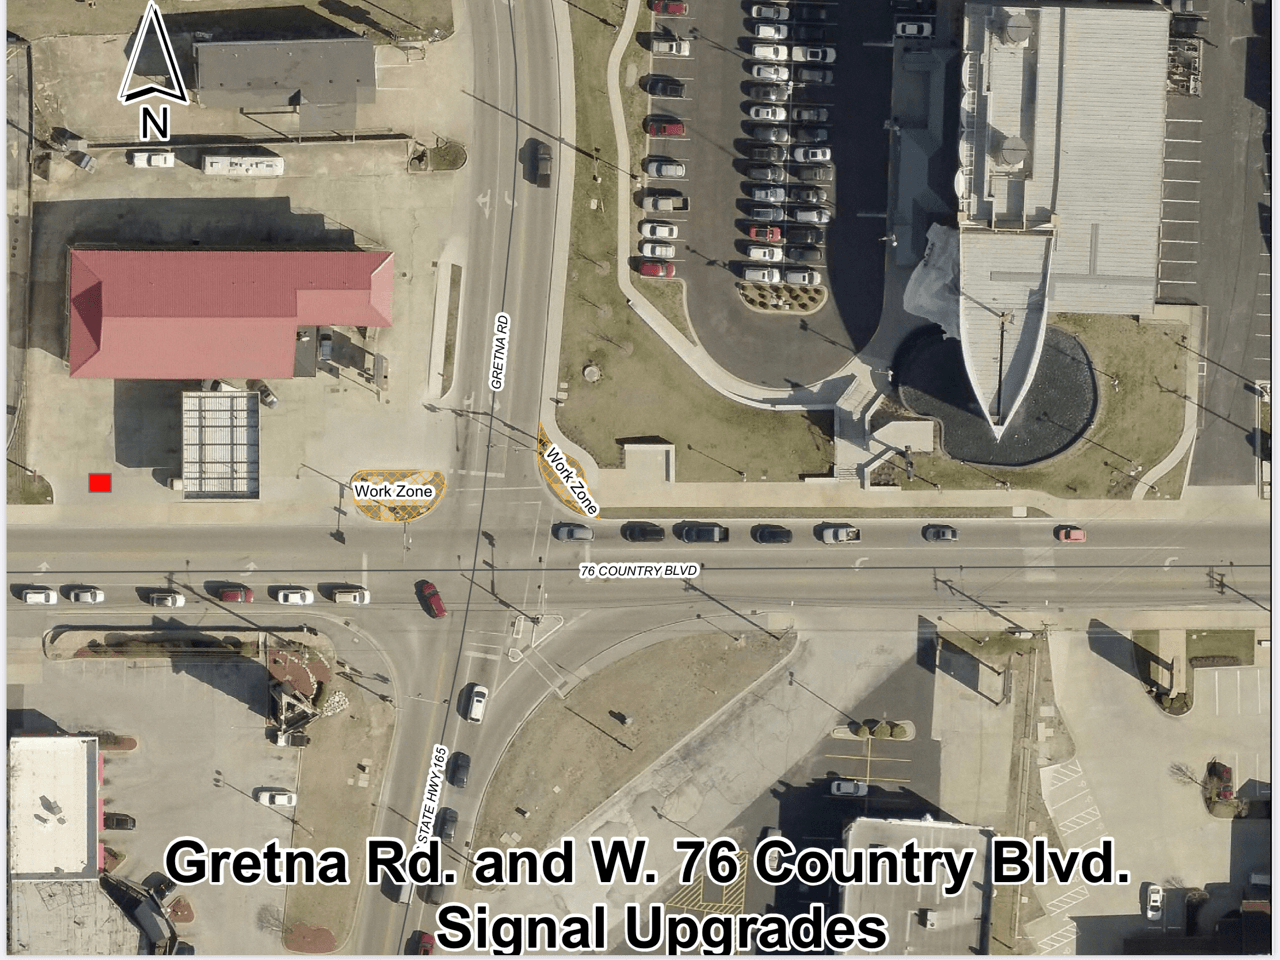 Gretna and 76 Intersection pedestrian signal upgrades